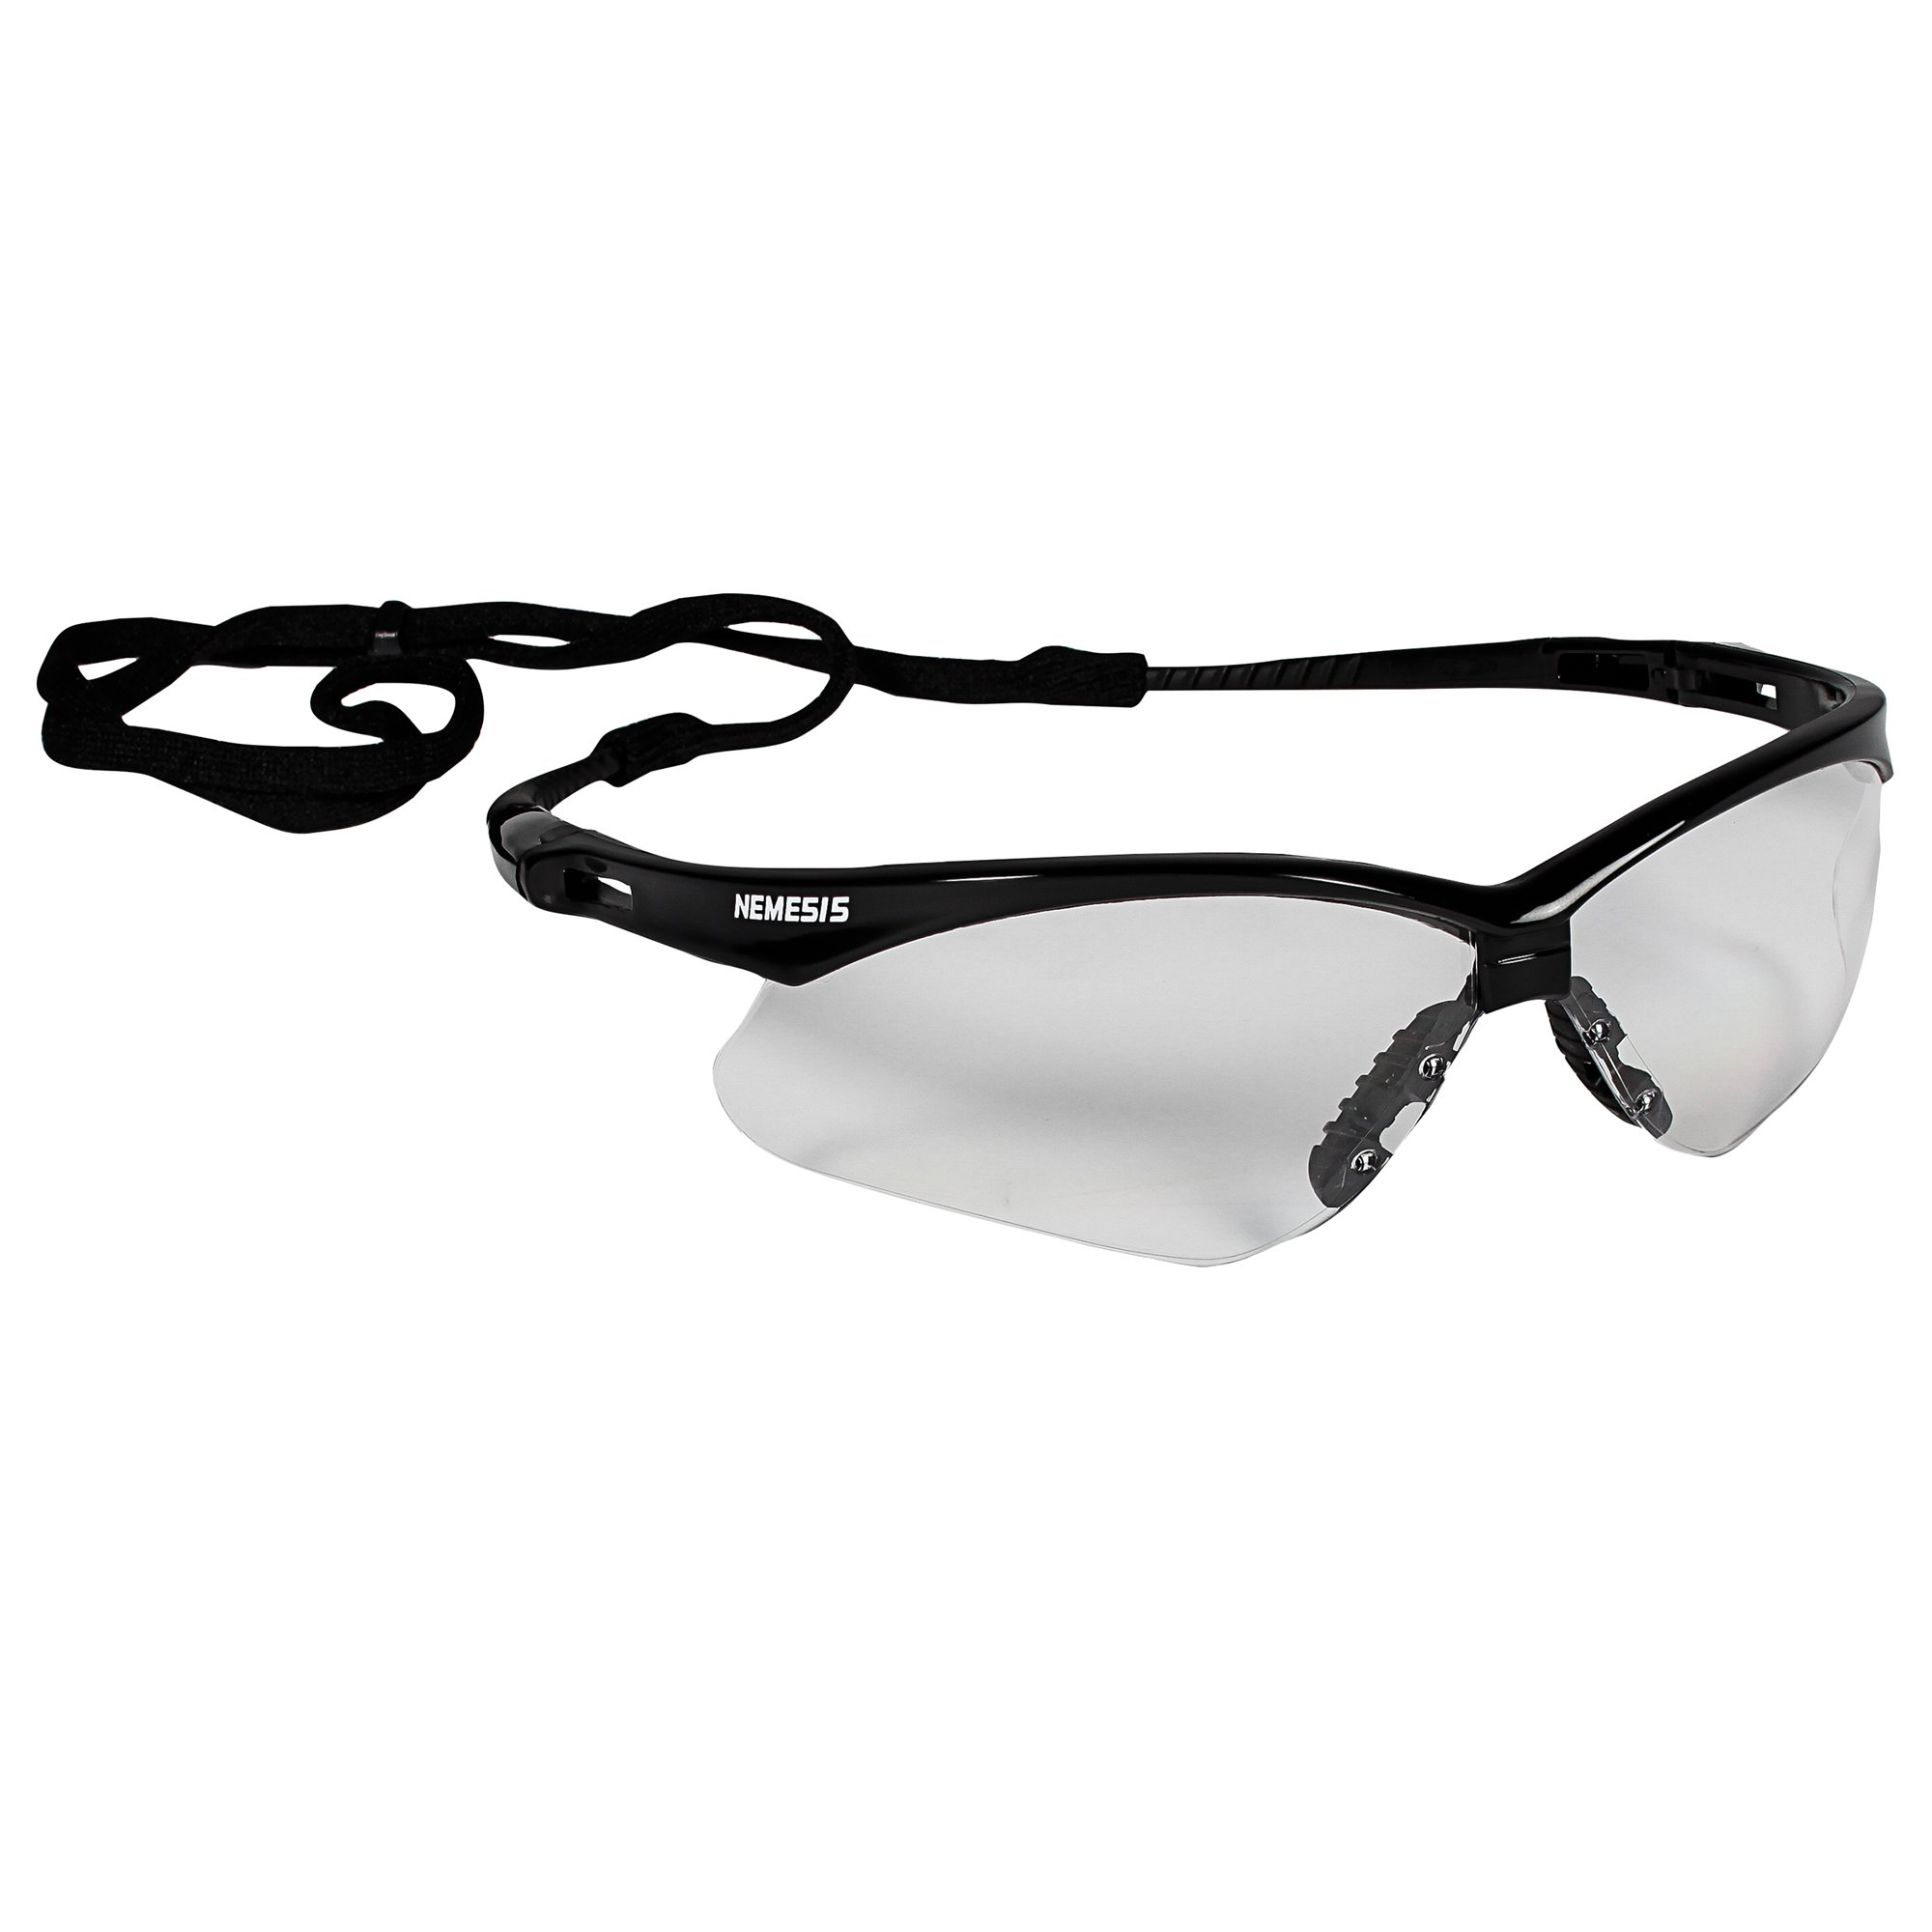 Jackson Safety V30 Nemesis Safety Glasses (25676), Clear with Black Frame, 12 Pairs / Case